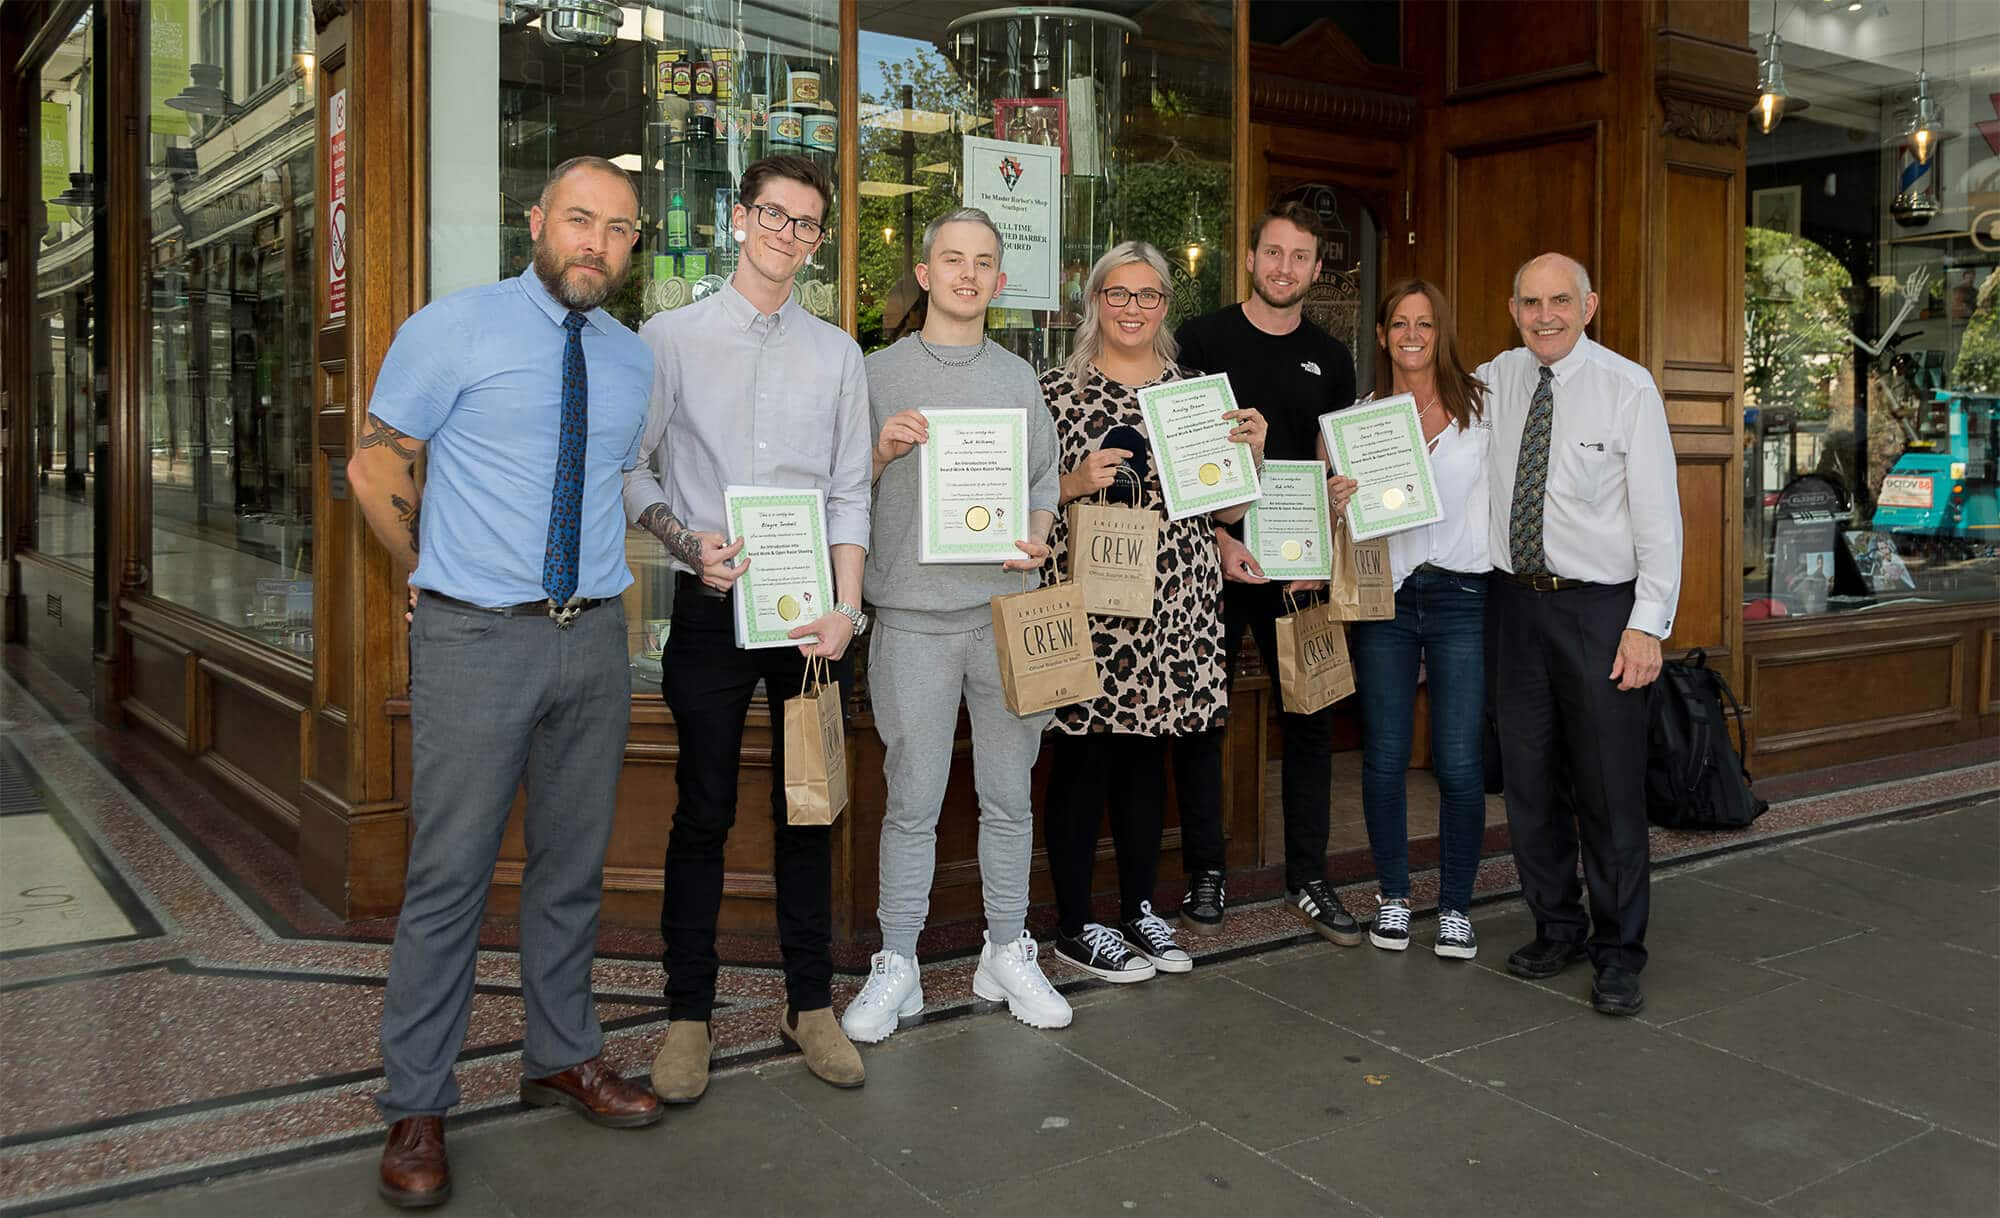 The Master Barbers Courses